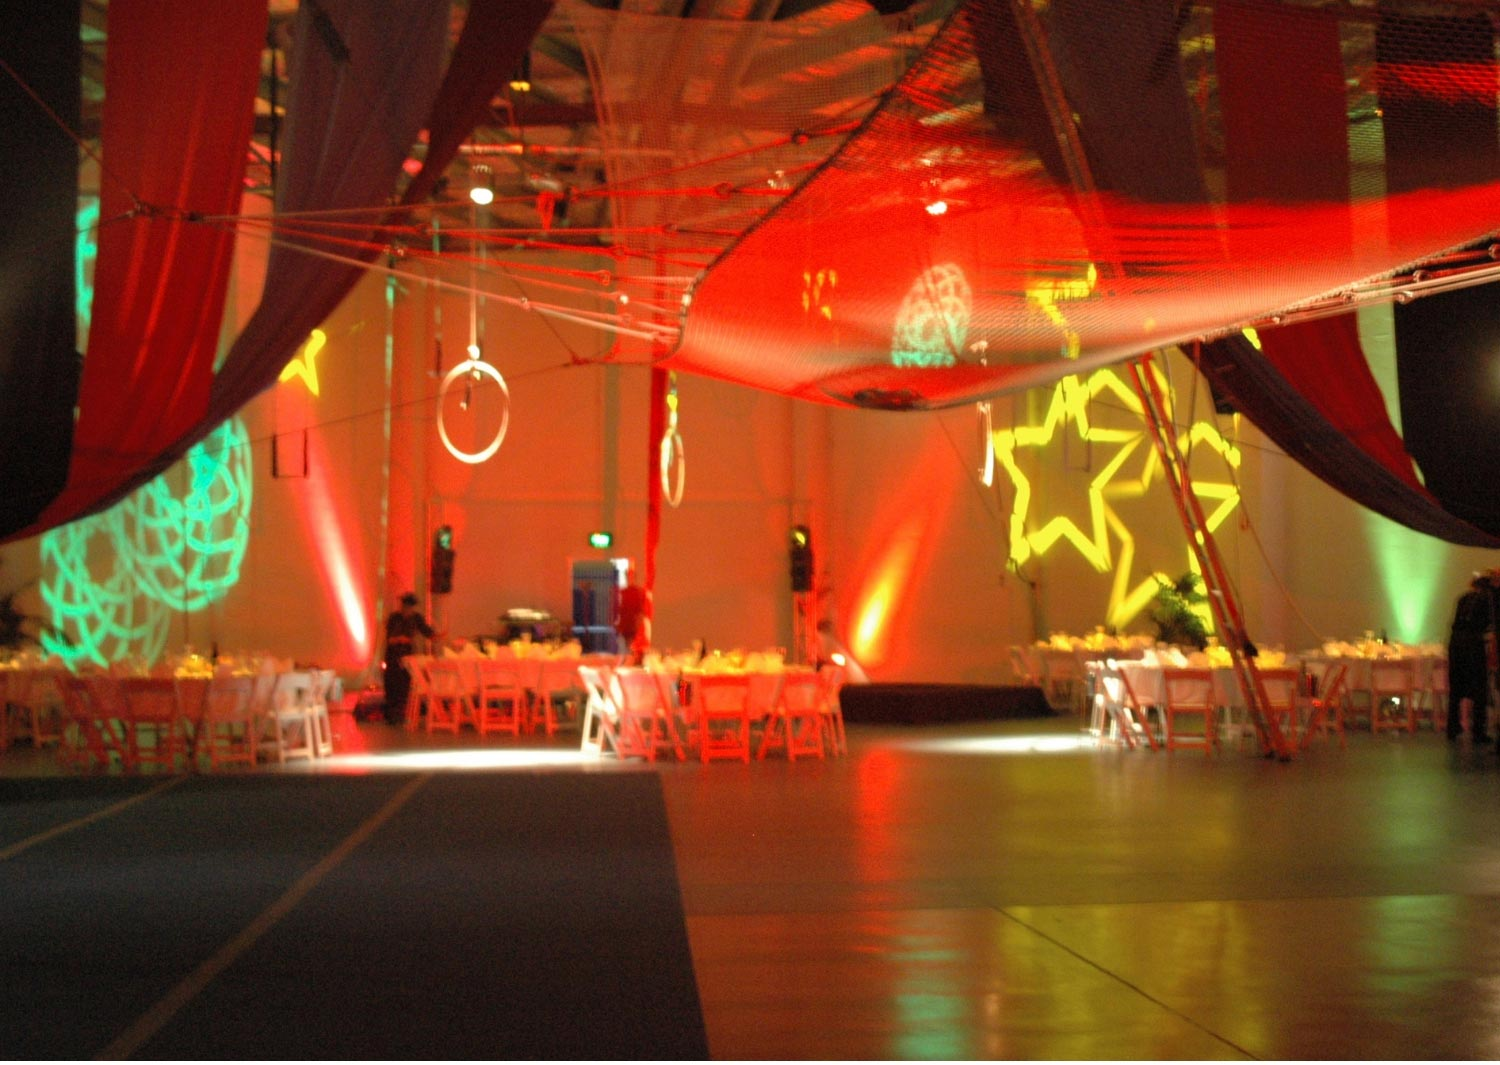 circus-arts-byron-bay-venue-hire-events-dinners-shows-performances-corporate-private-functions-5